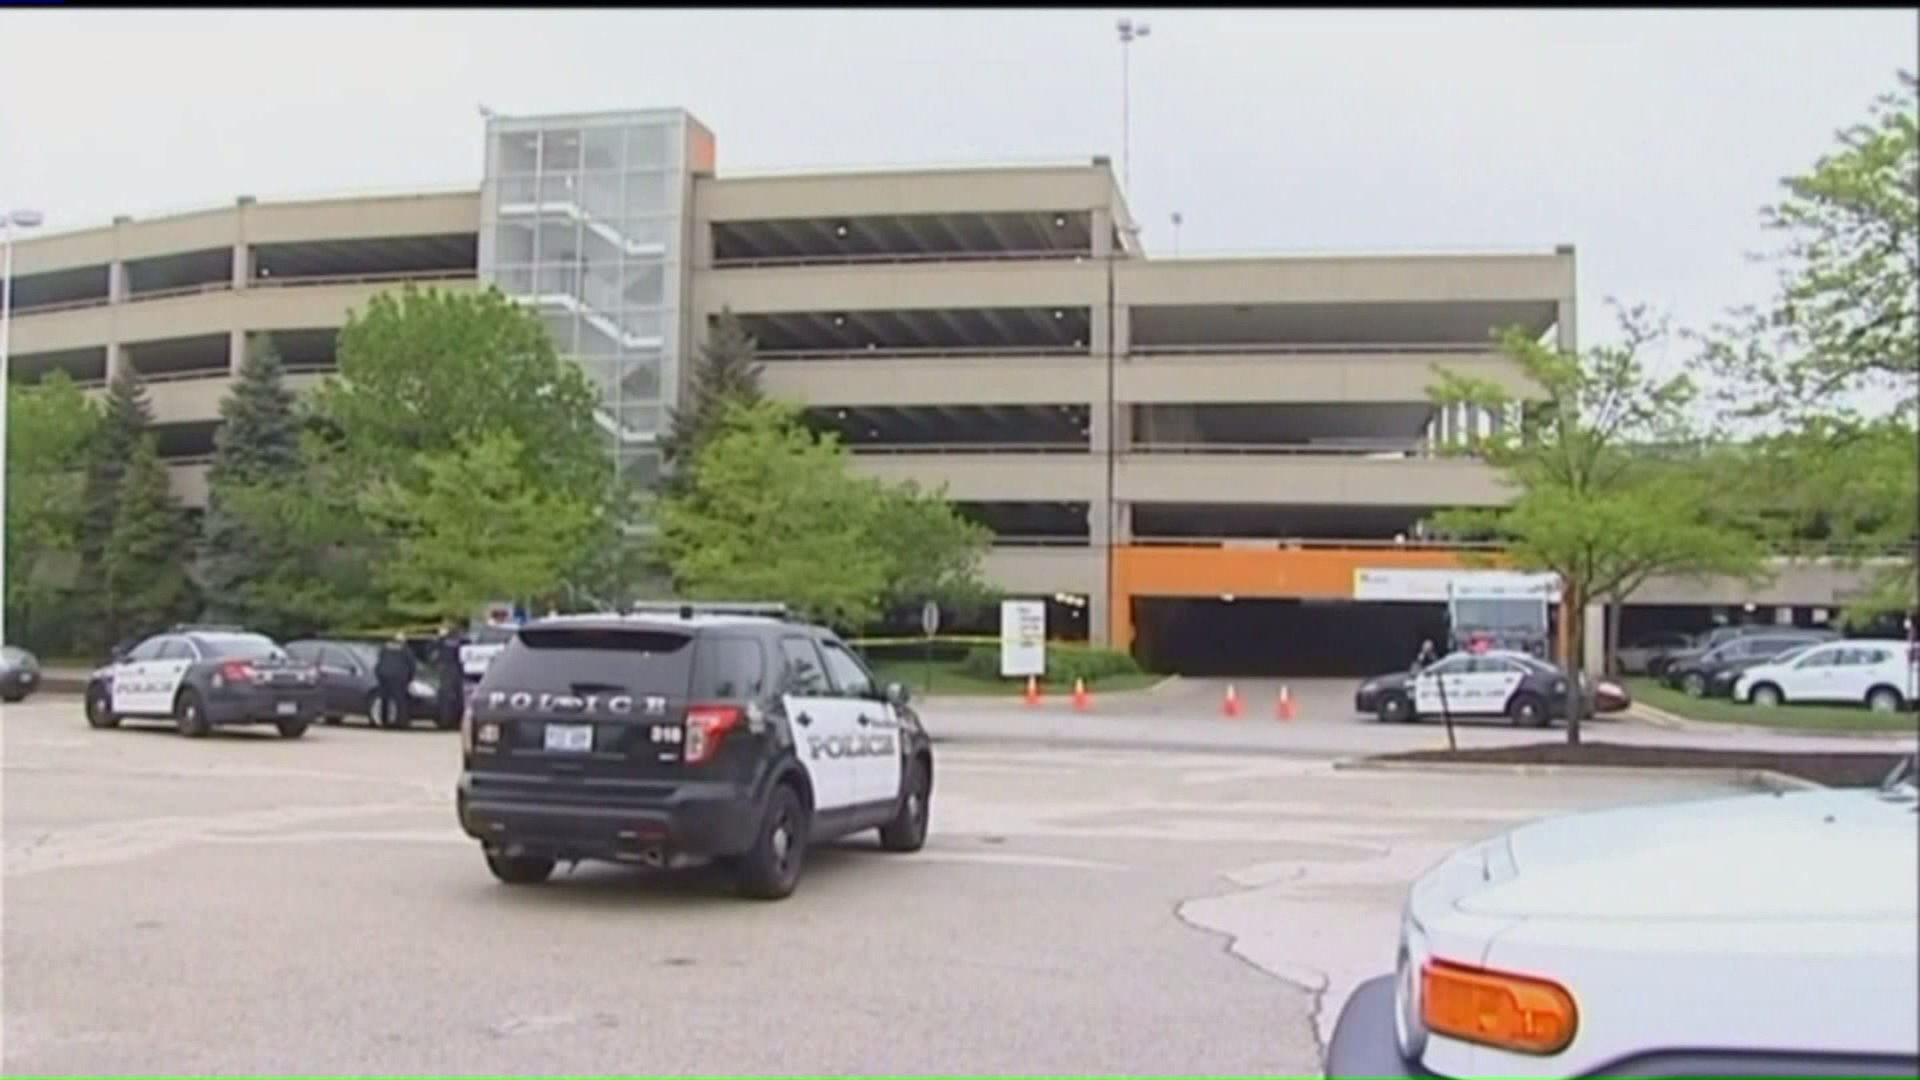 Gruesome Discovery Made in Parking Garage at Suburban Chicago Mall